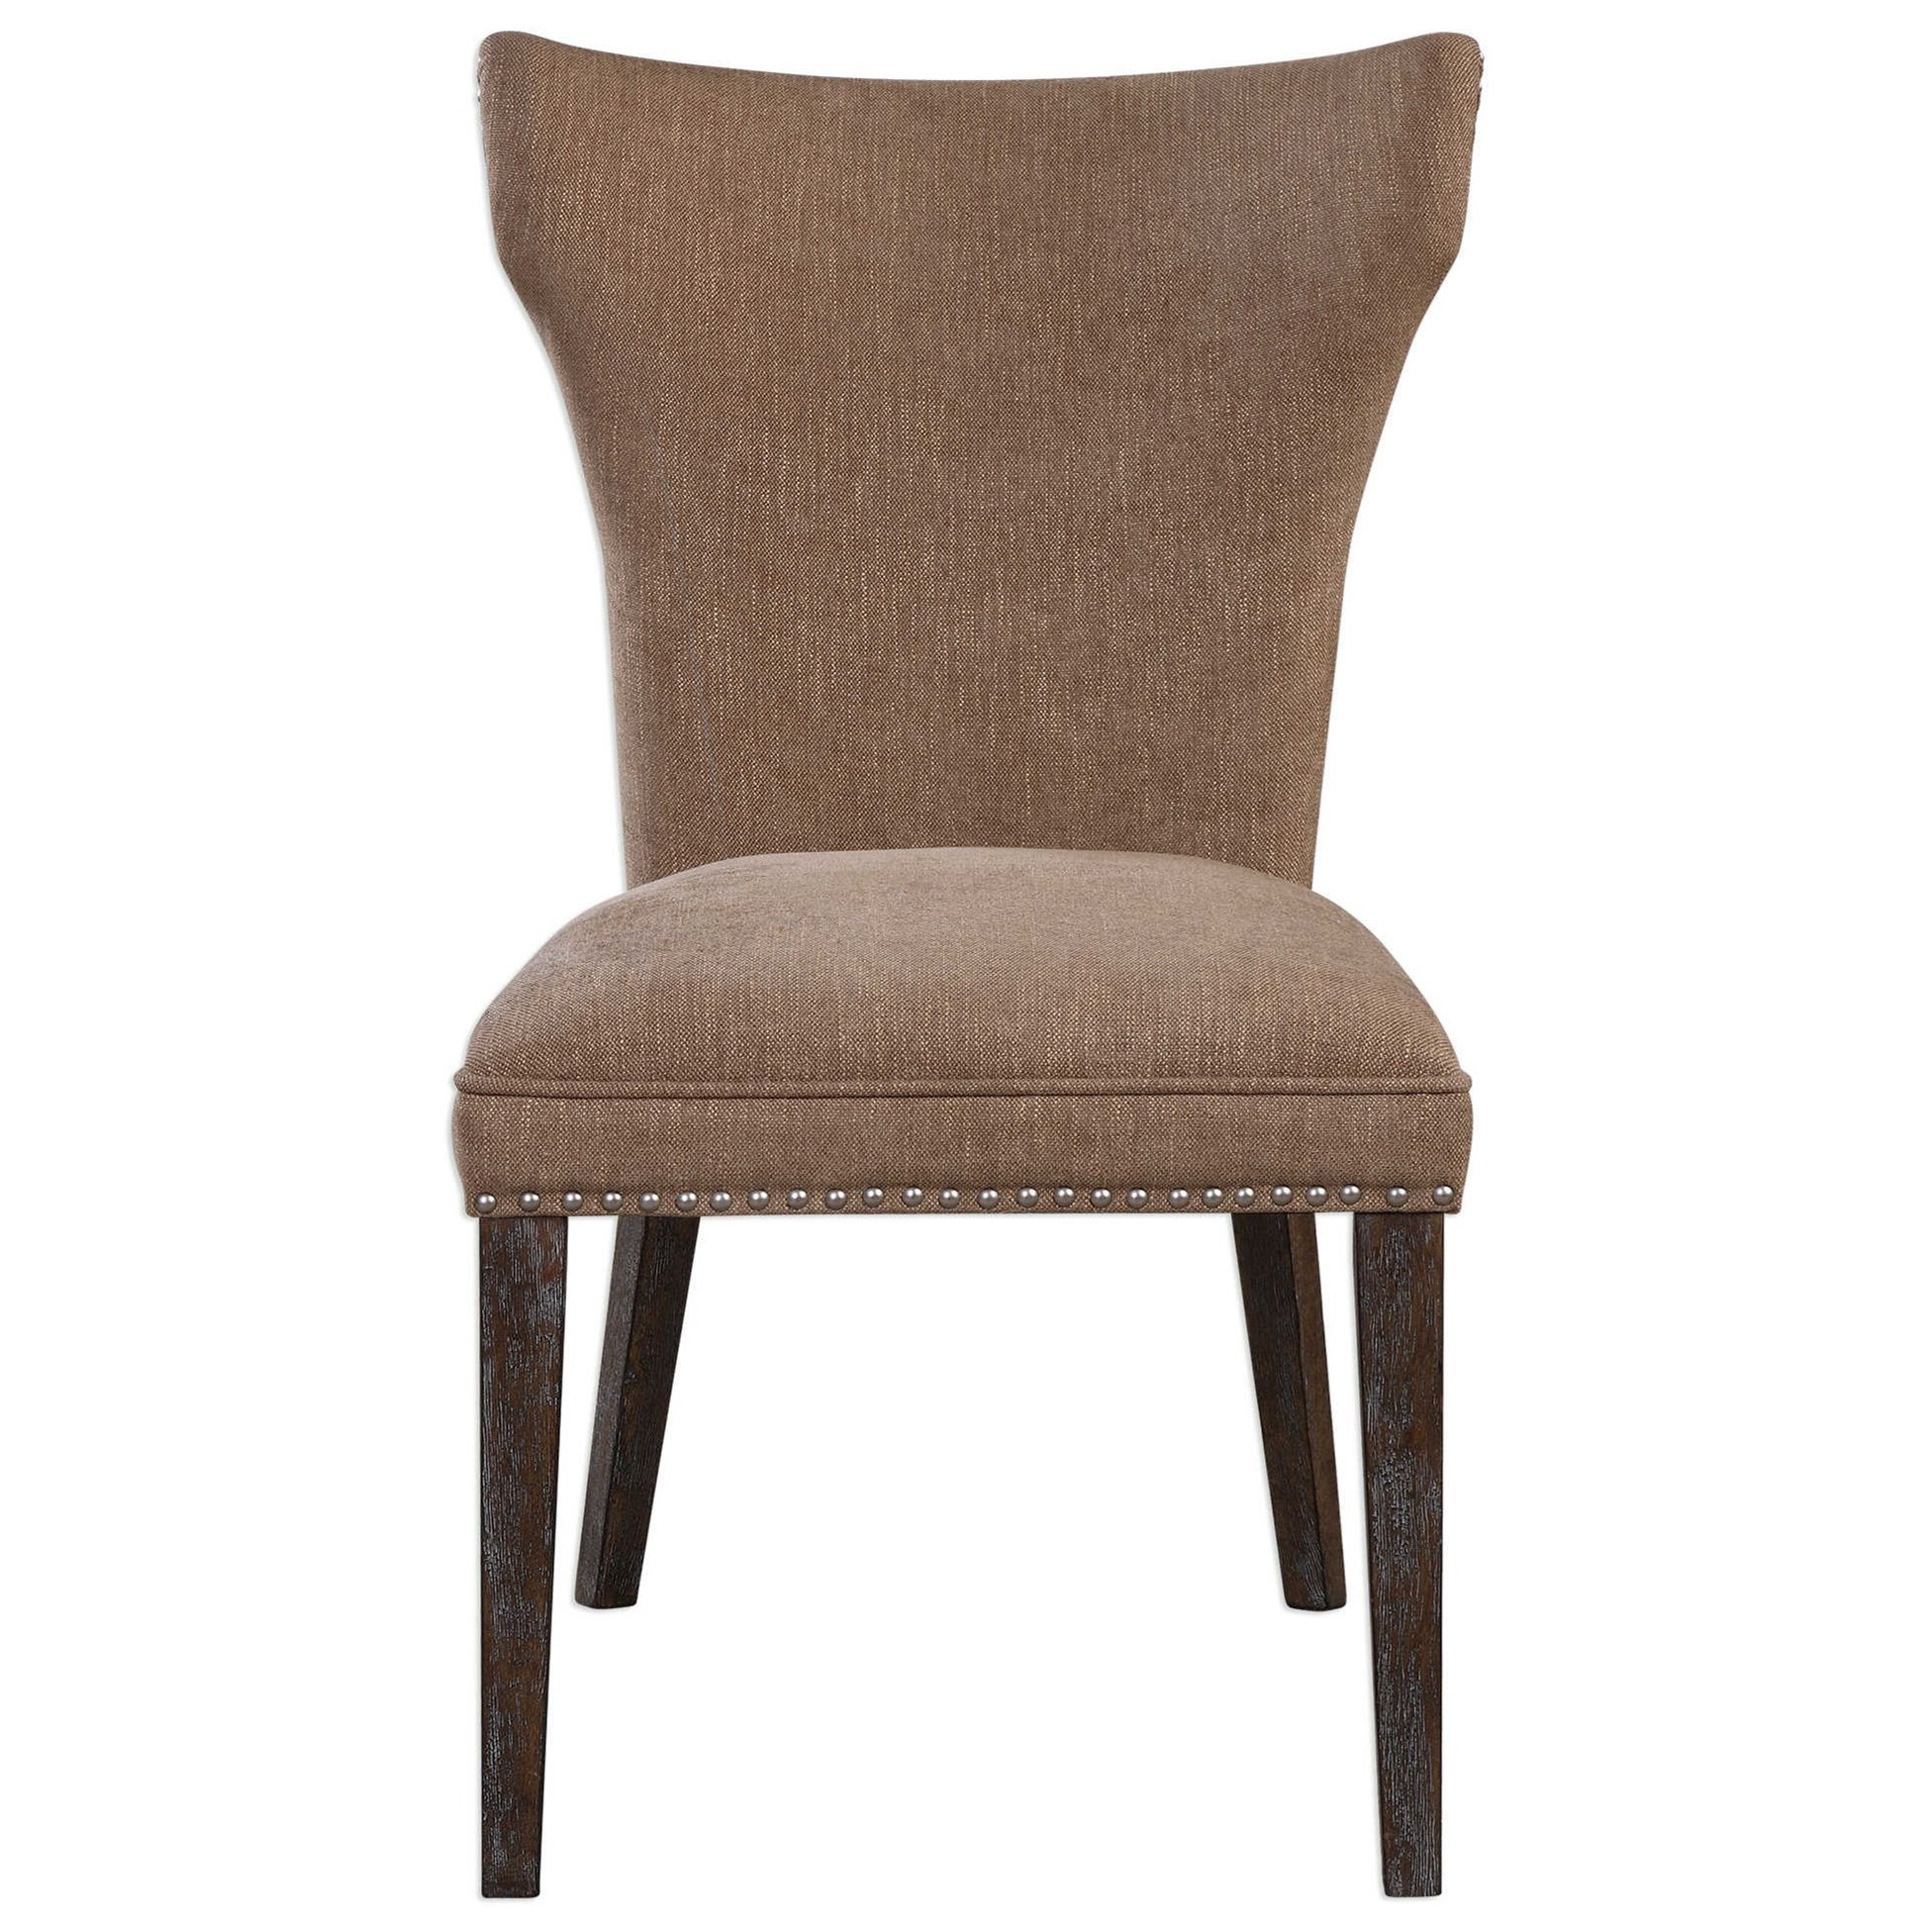 bright colored accent chairs tyke hike chair uttermost furniture 23364 aaronus armless